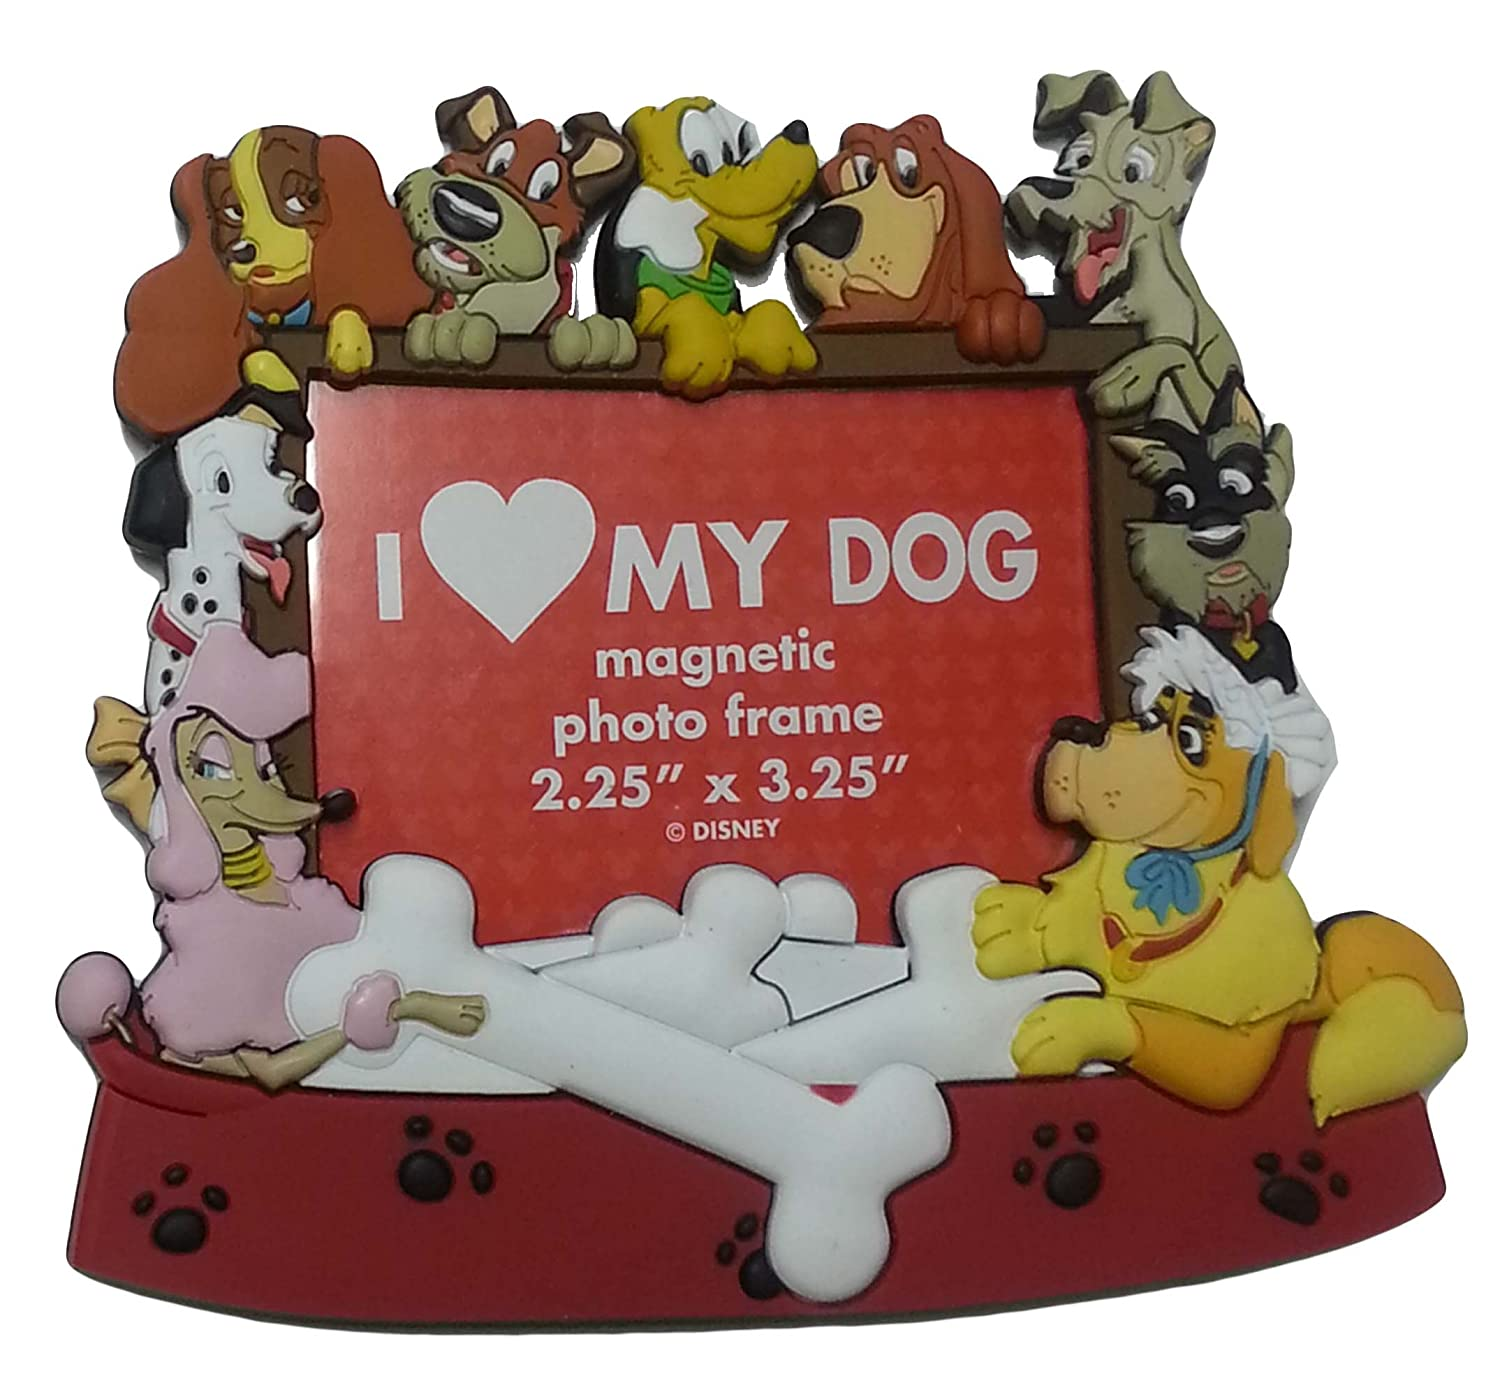 Amazon.com: Disney Parks - I Love My Dog Magnetic Photo Frame: Home ...